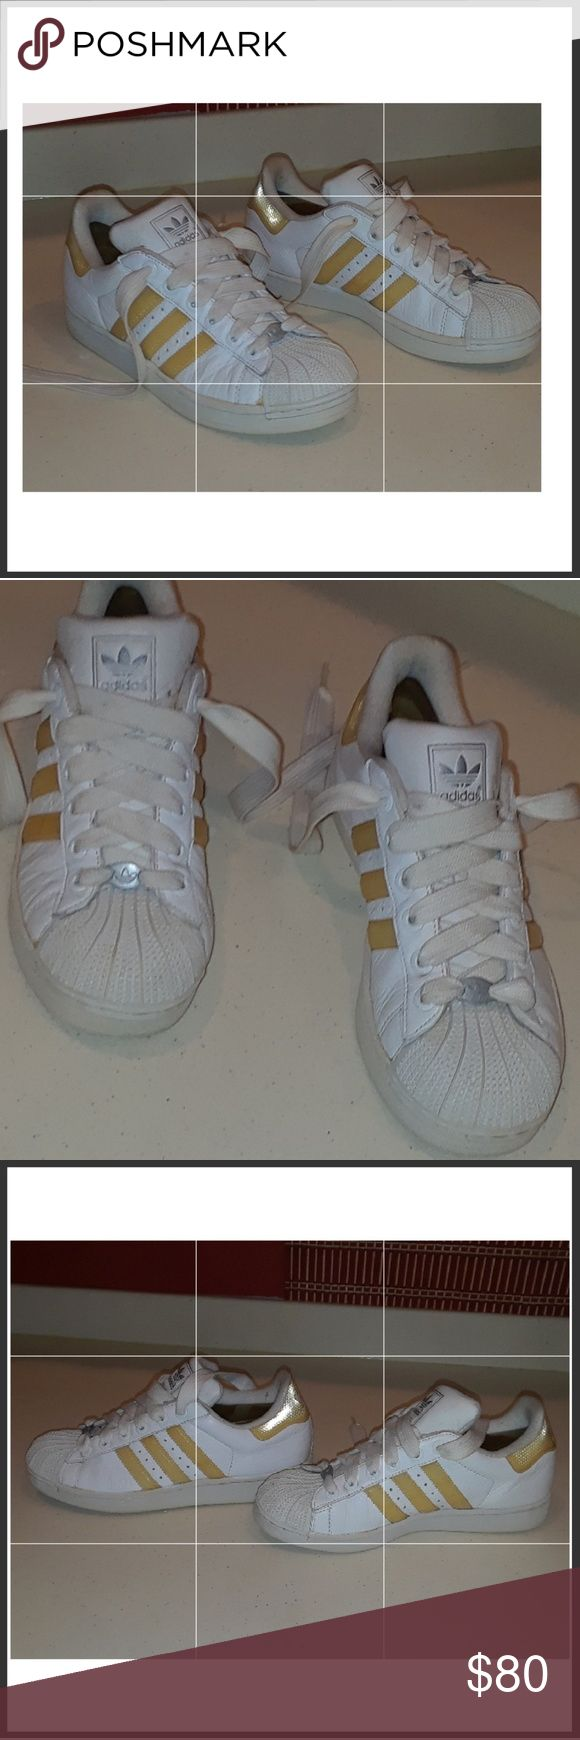 Vintage ADIDAS sneakers Vintage ADIDAS White leather sneakers with reflective trim and all rubber at the toe. adidas Shoes Sneakers